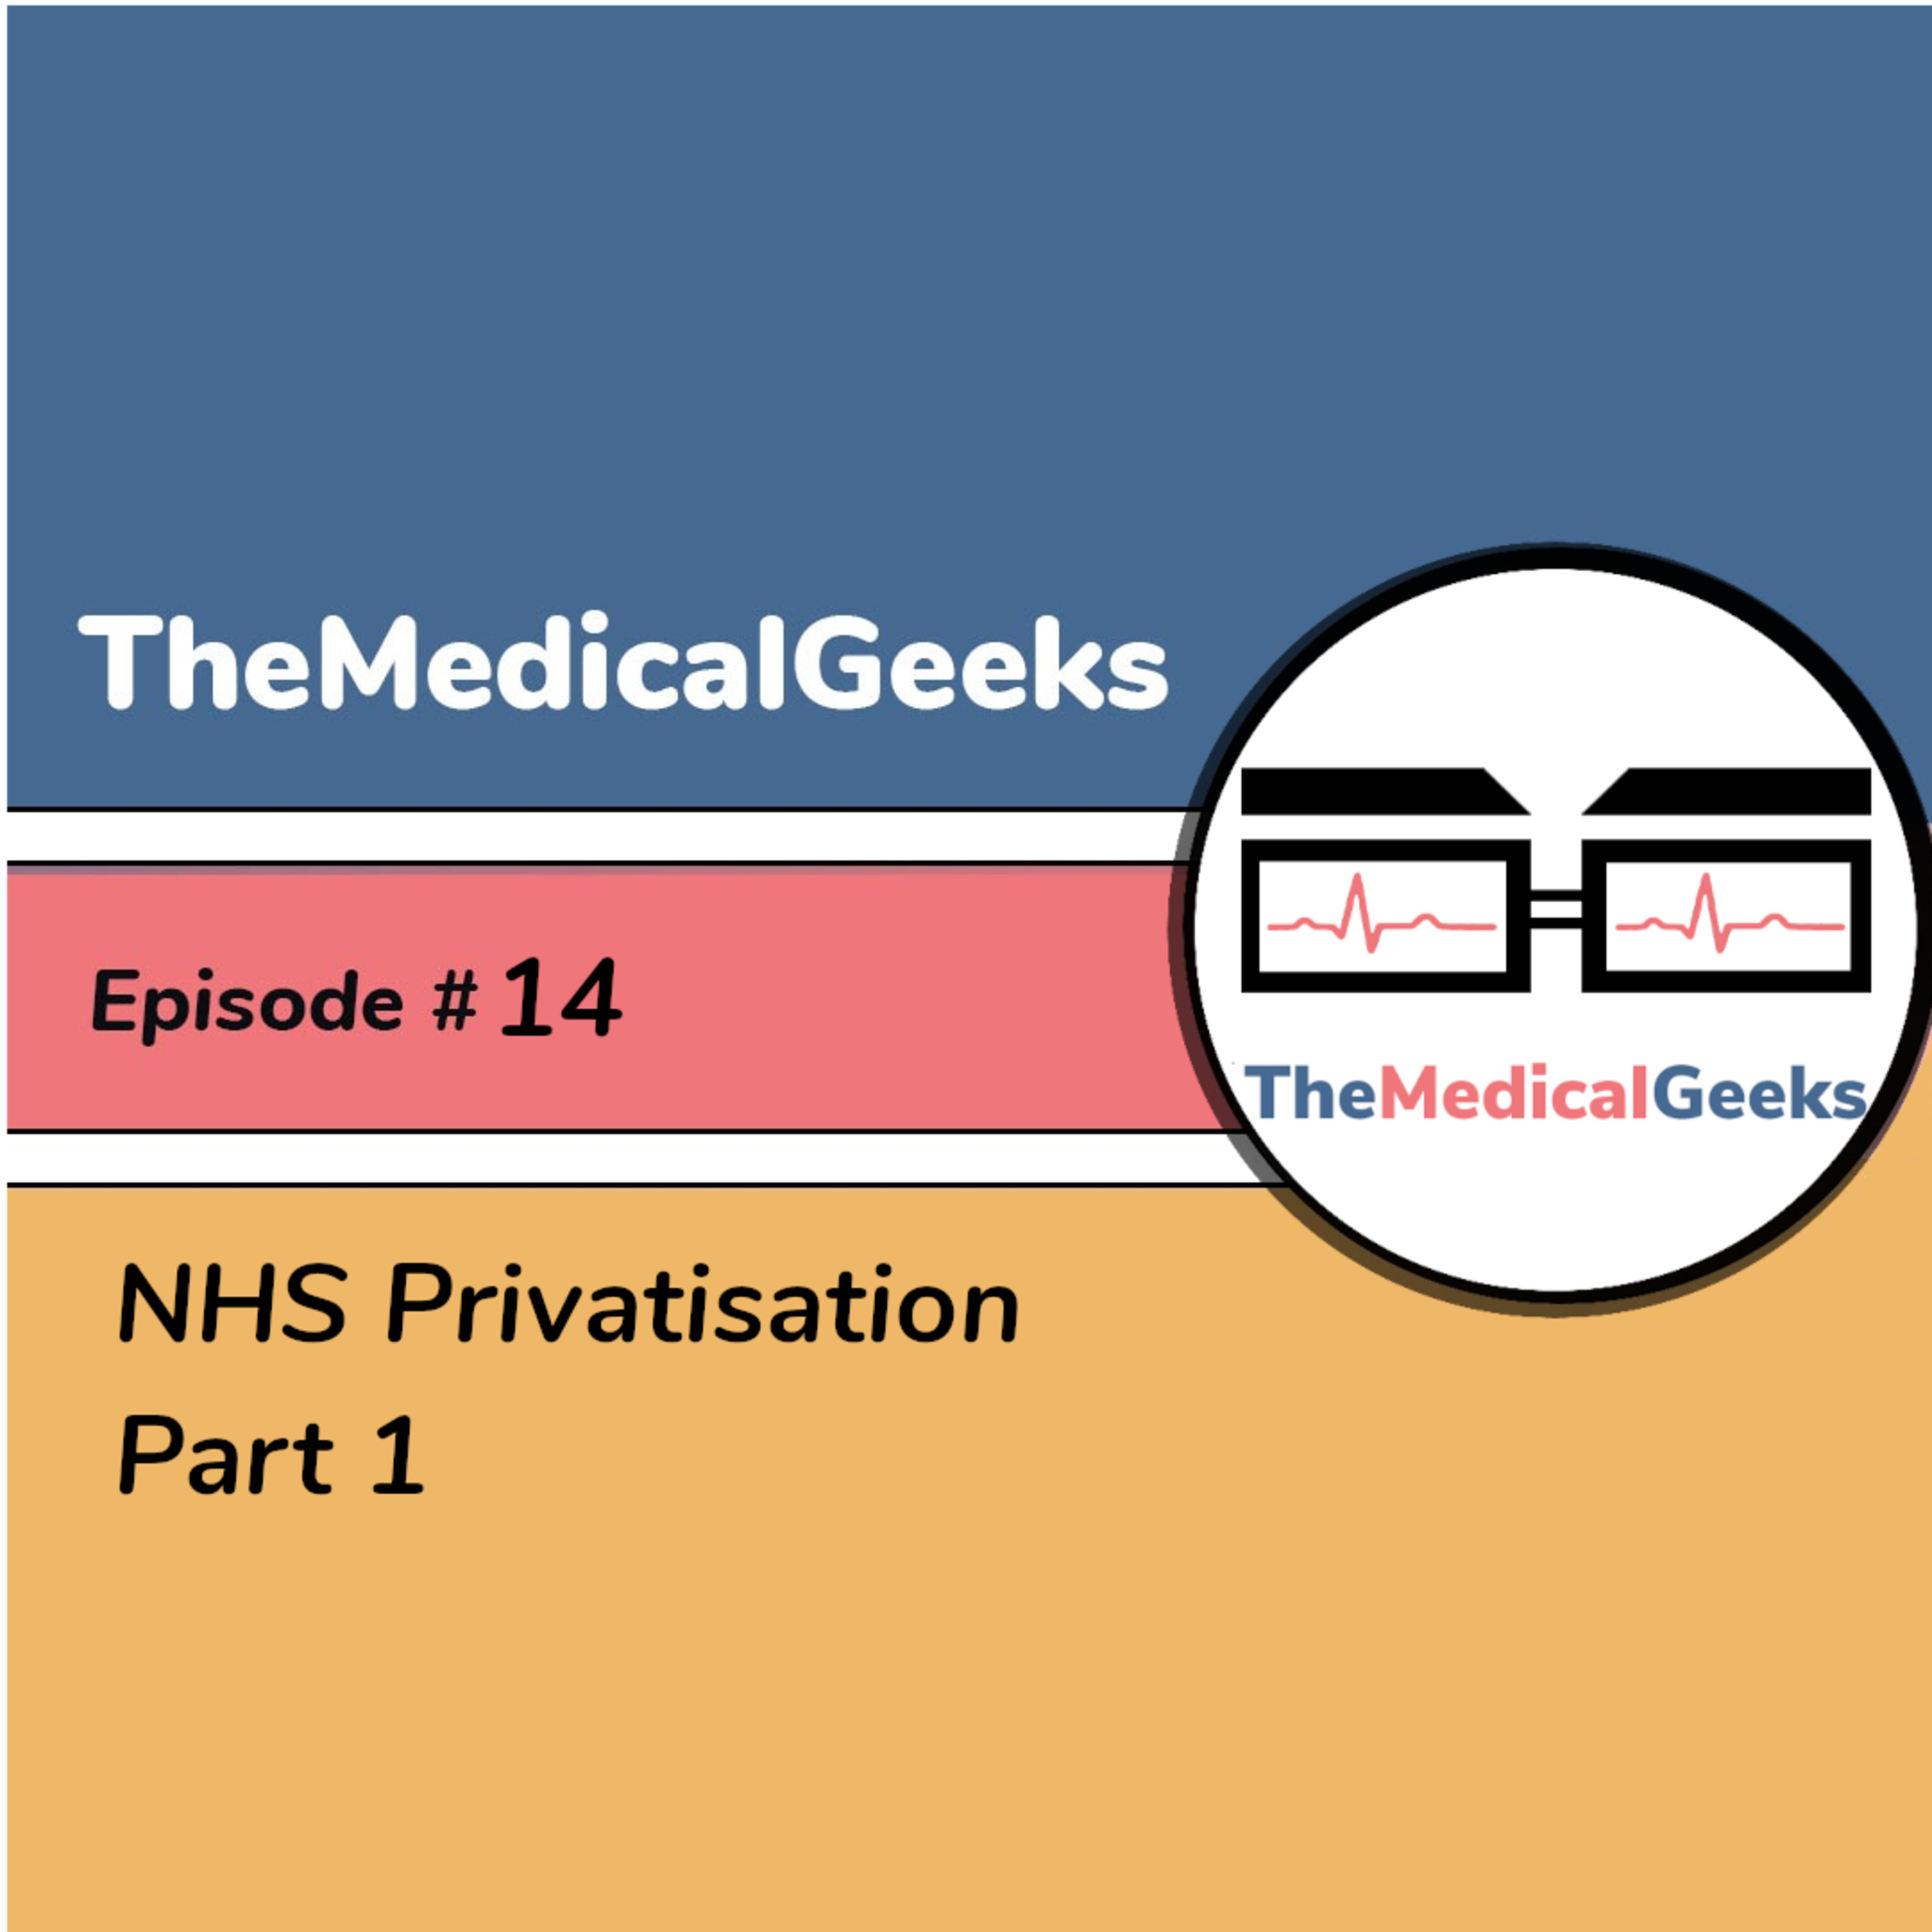 #14 Episode 14: NHS Privatisation Part 1